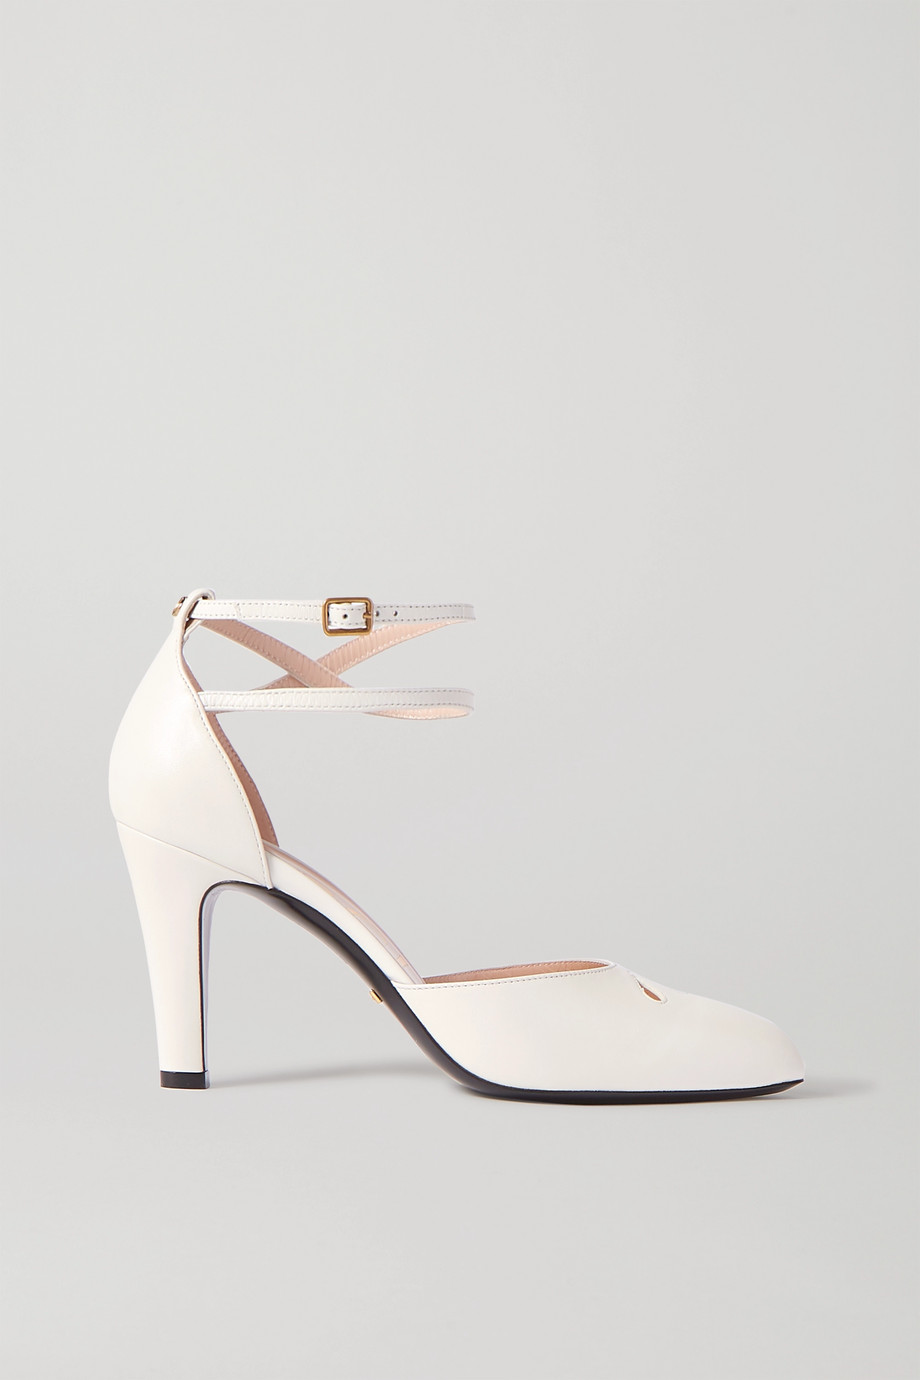 Gucci Indya cutout leather pumps